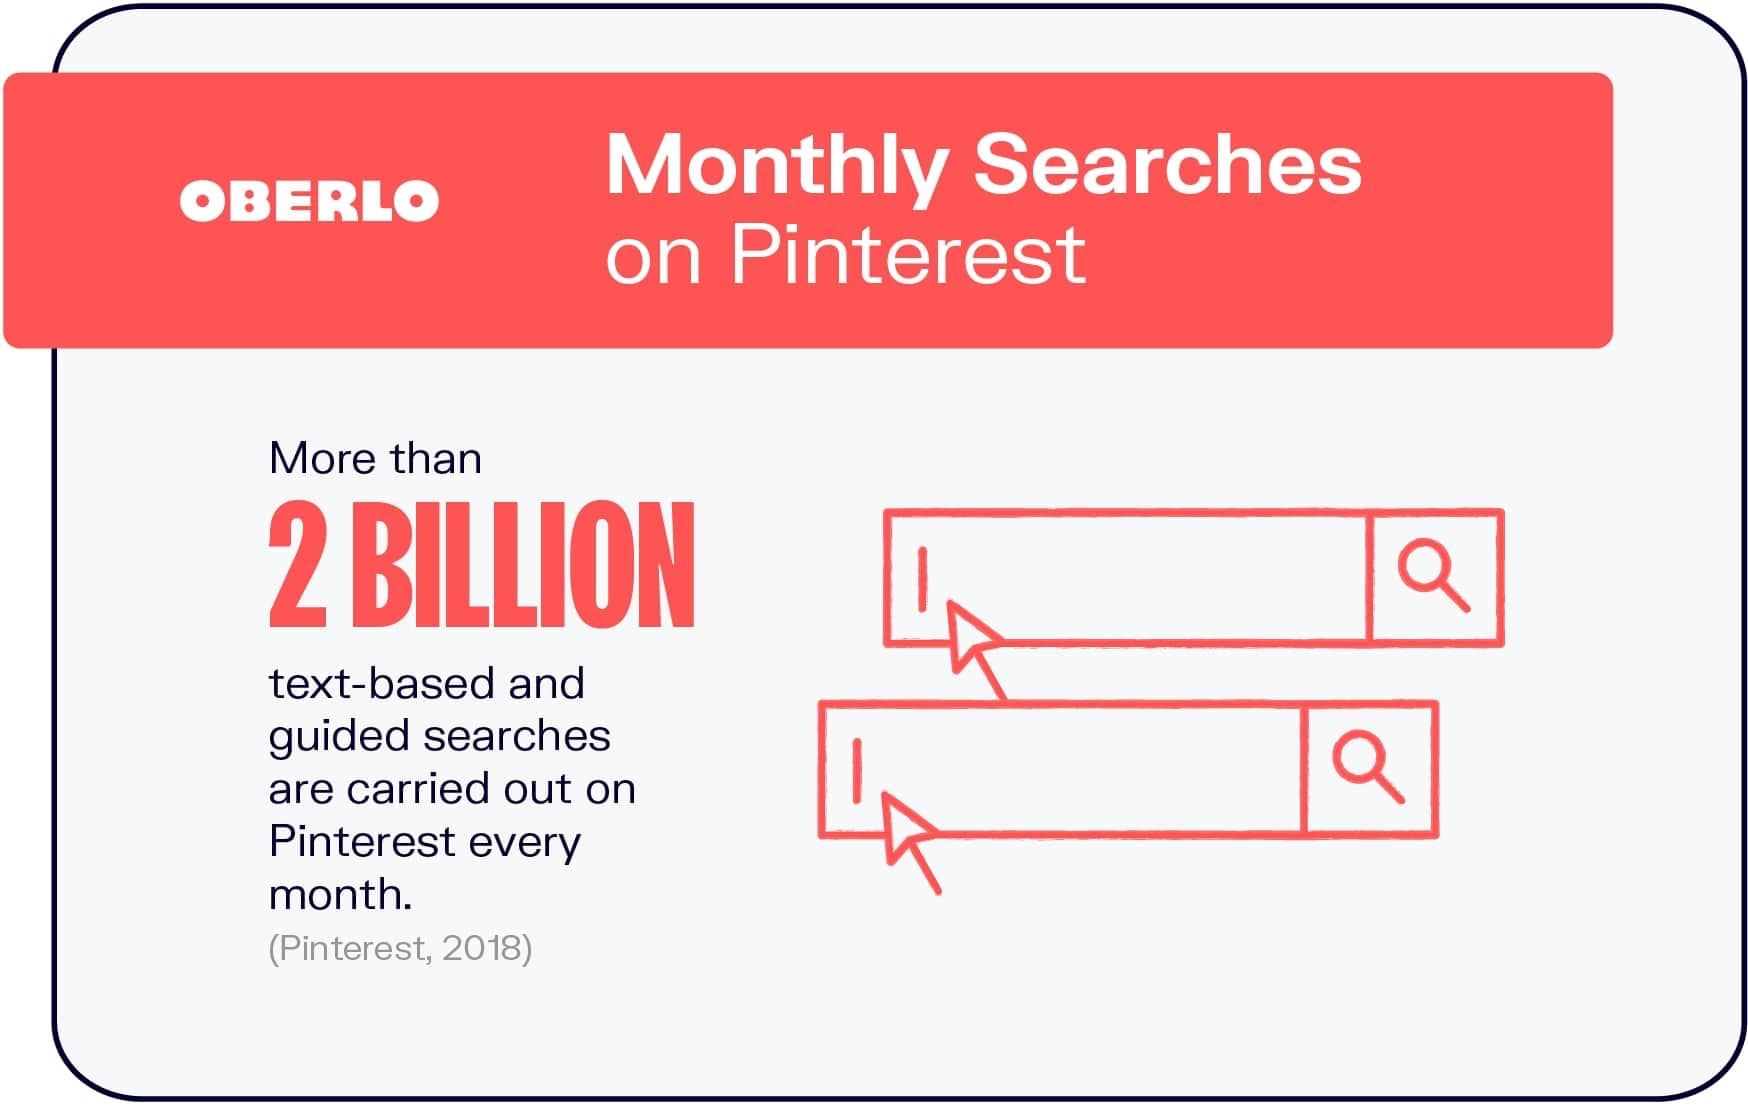 Monthly Searches on Pinterest